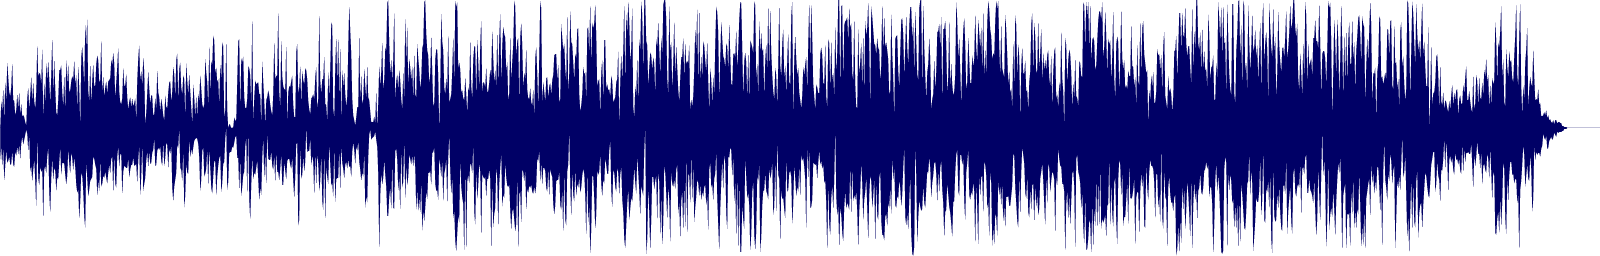 waveform of track #146184